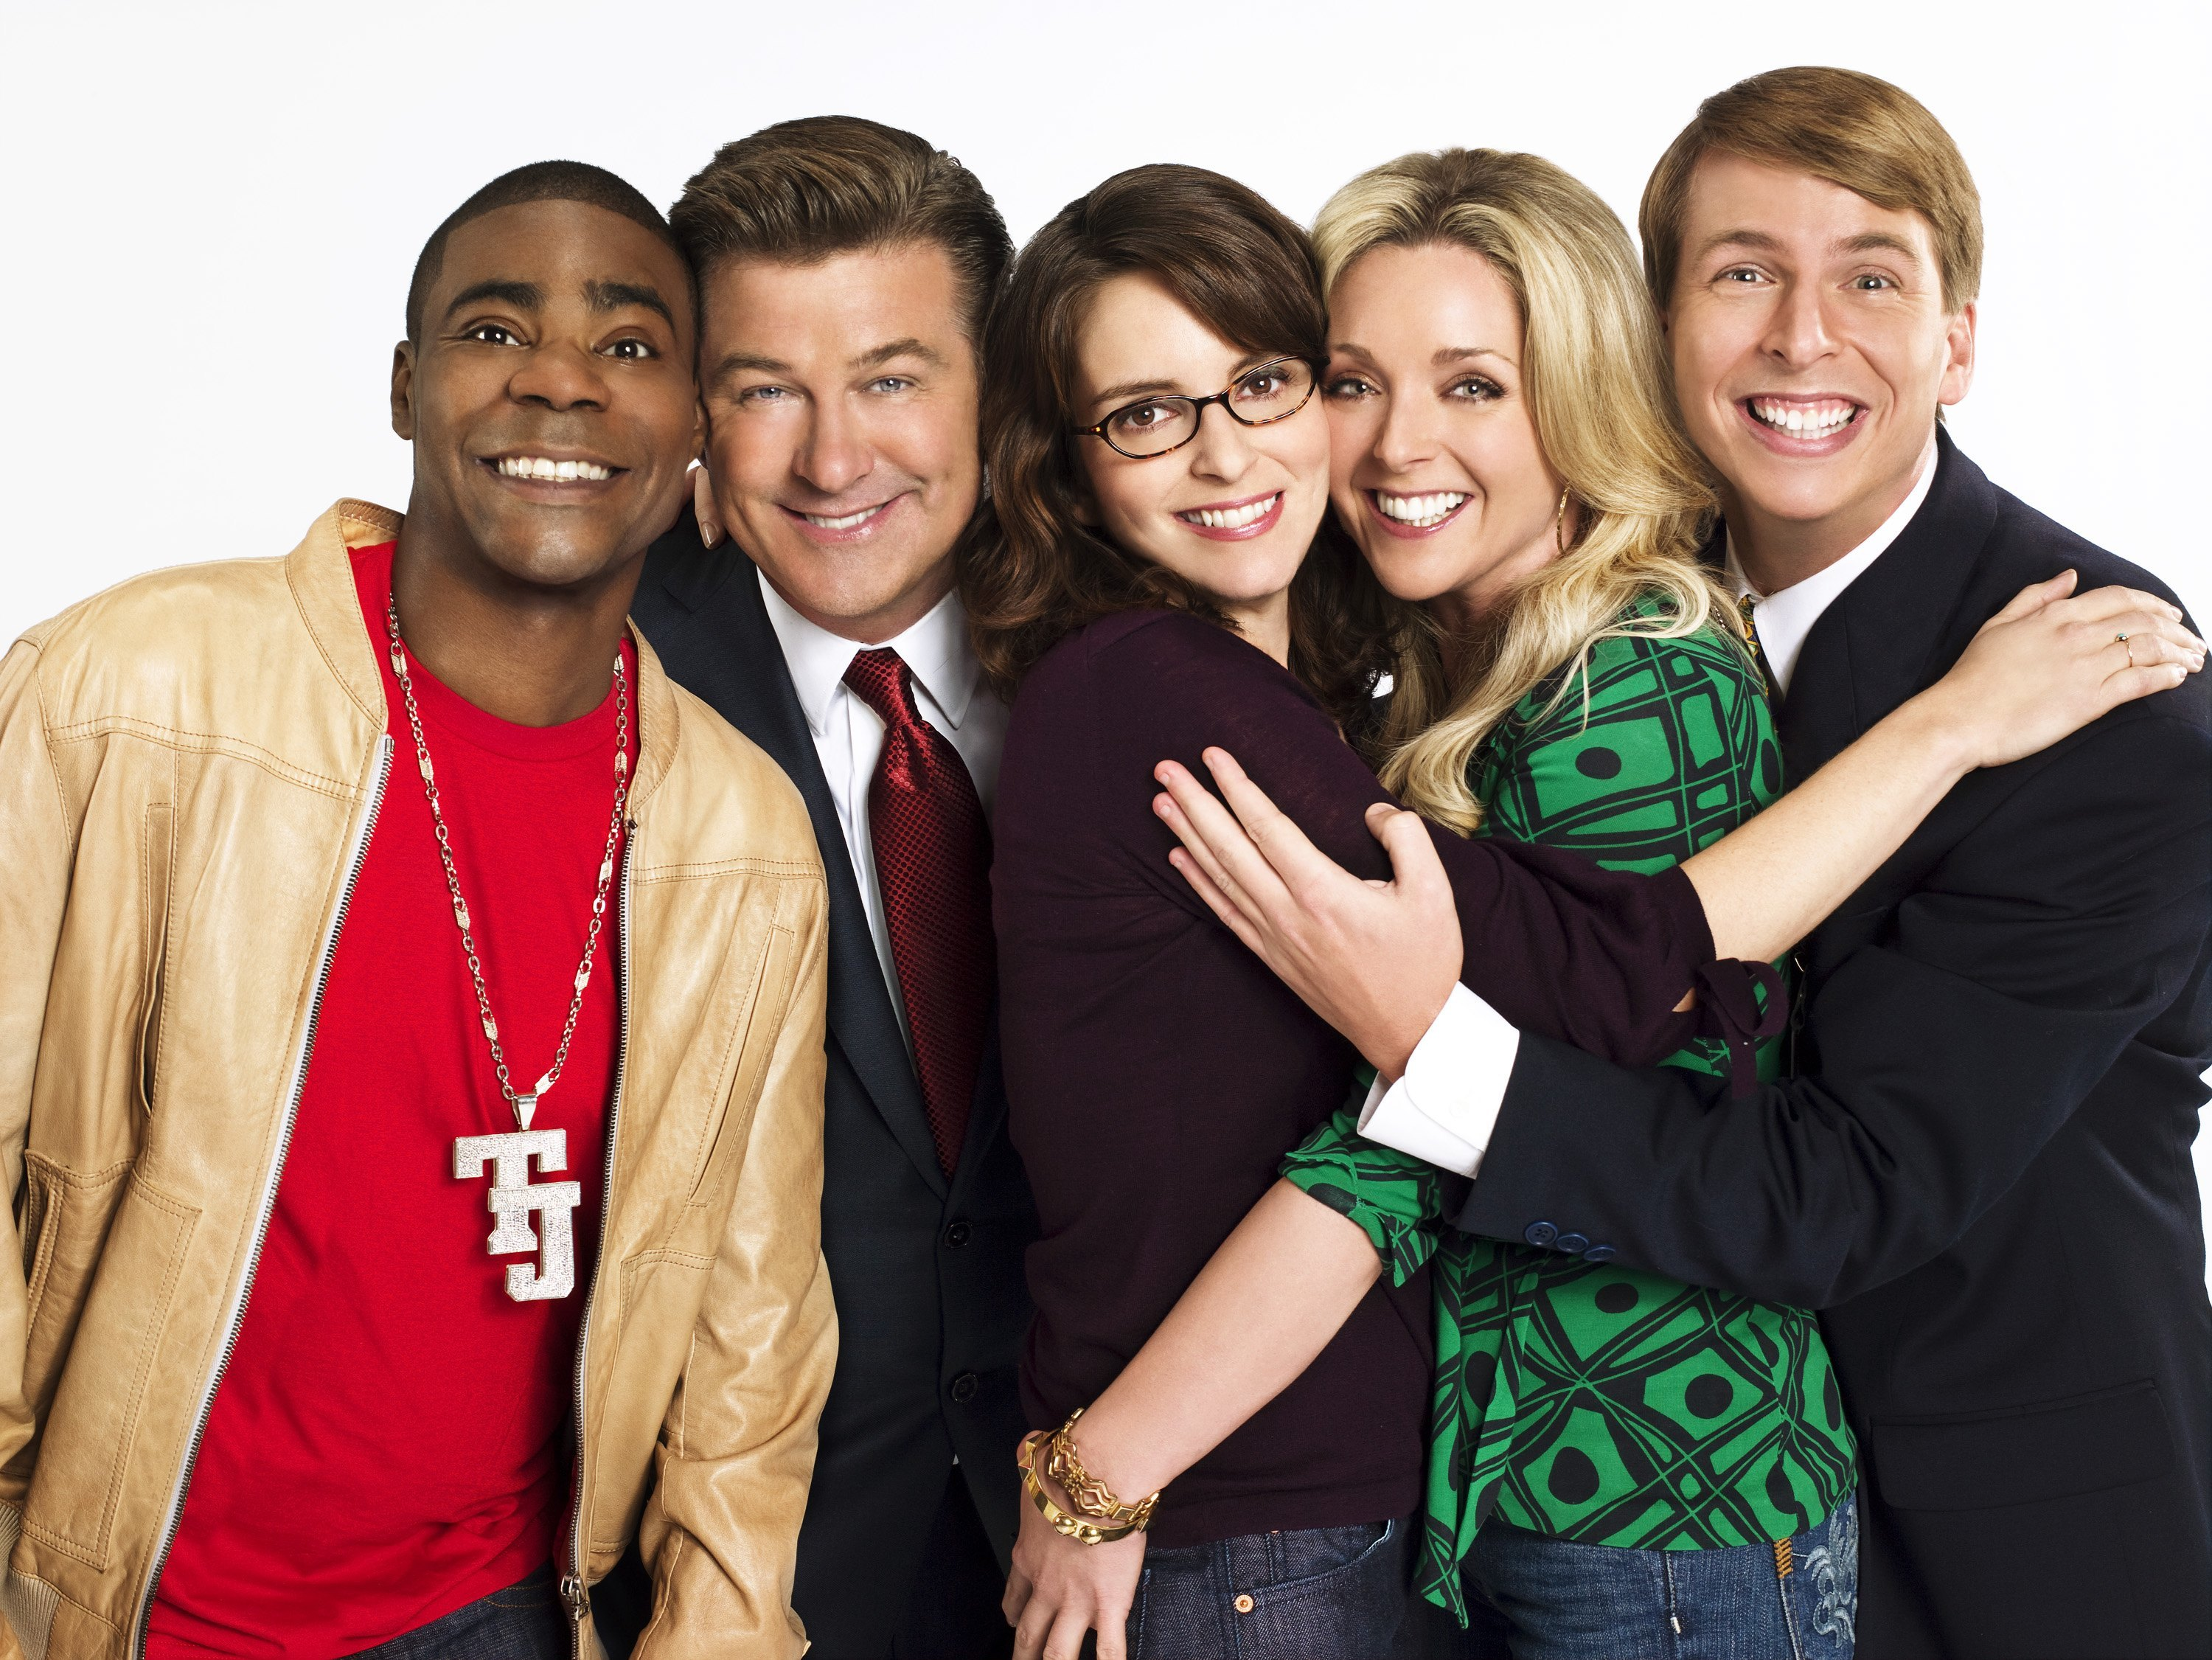 30 Rock actors and actresses - Where are they now? | Gallery